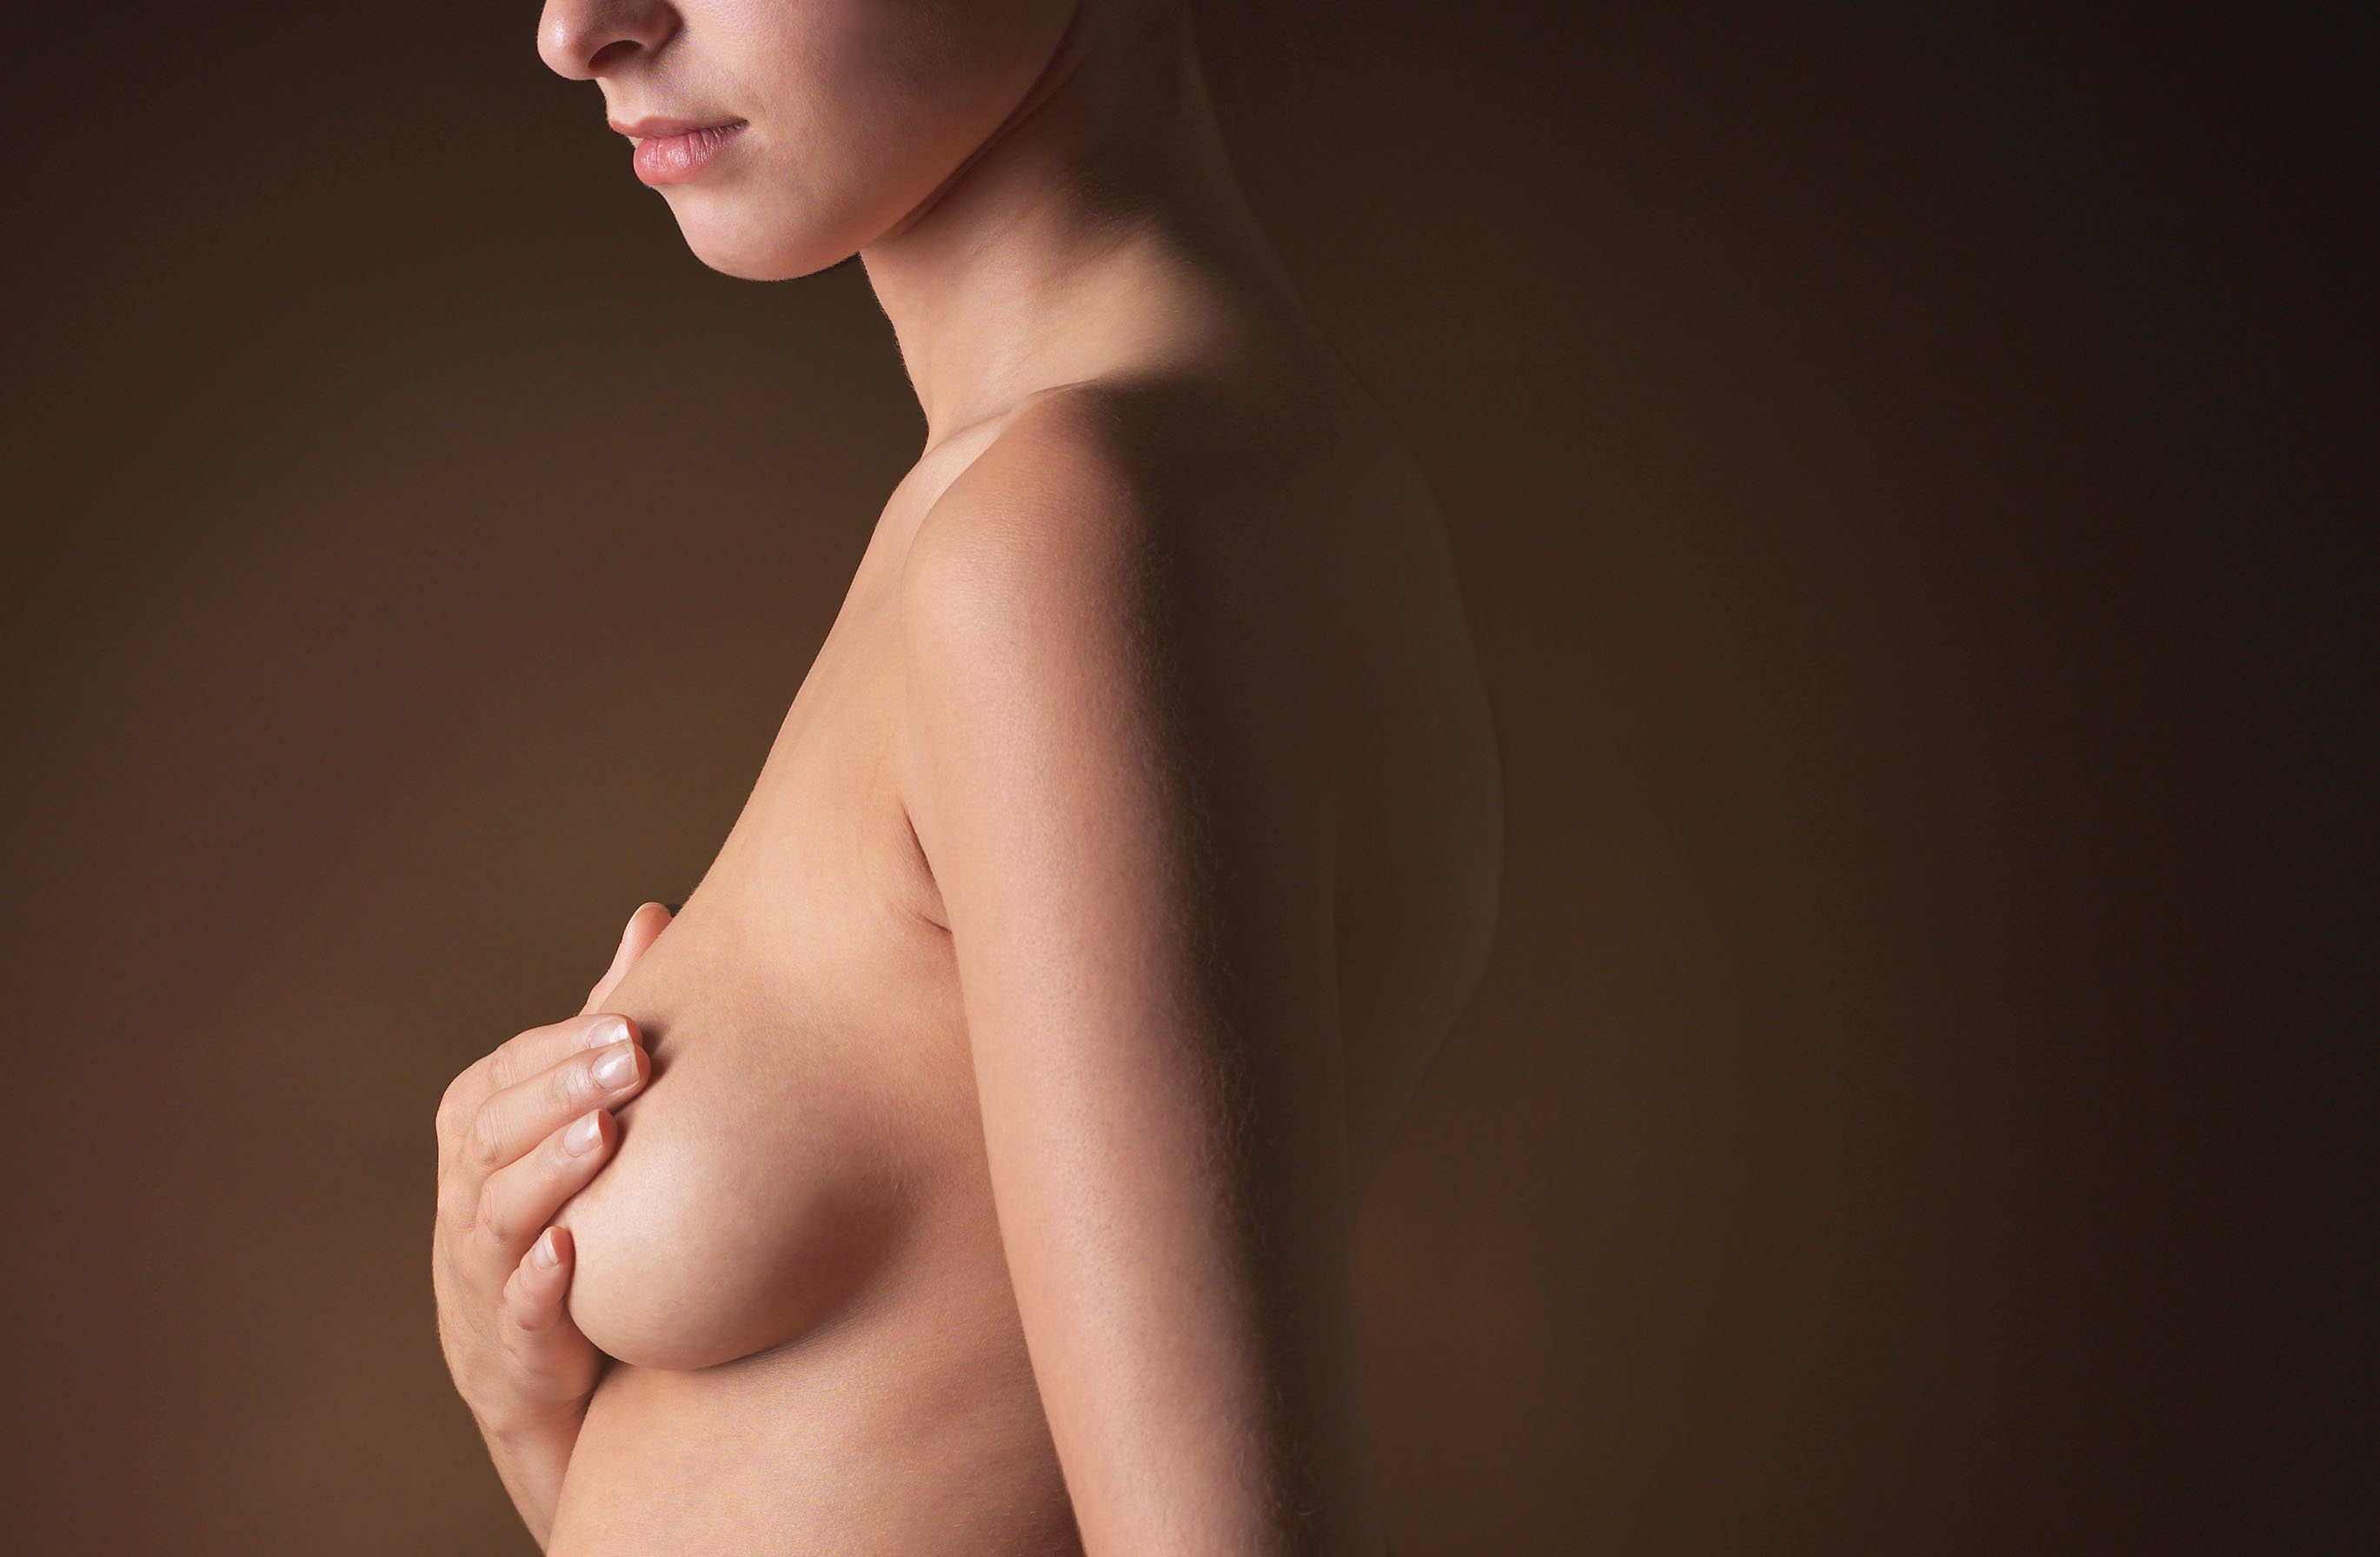 A woman checking her breastalamy